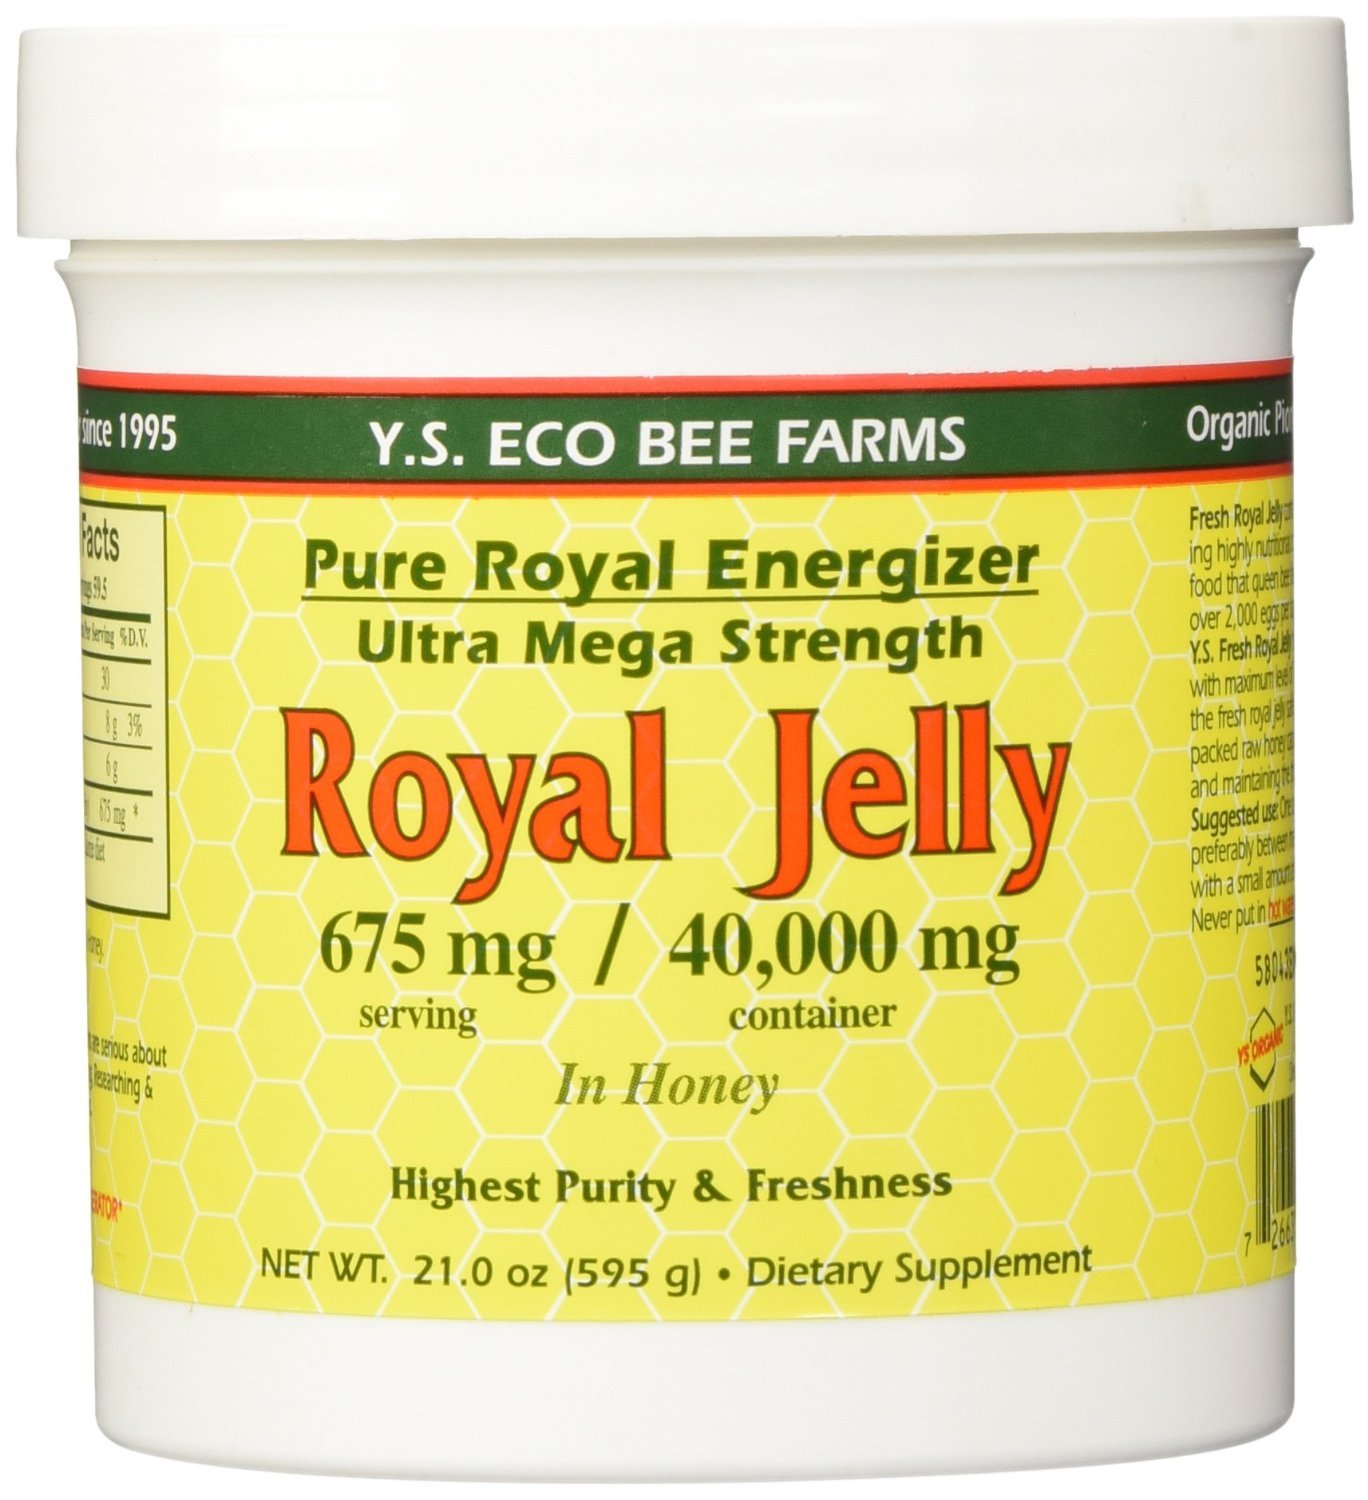 Ys Royal Jelly Honey Bee Pure Energizer Speaker Music Desktop 21 Mega Boom Series If 2103 Blue In Ultra Strength Oz Pack Of 3 Health Personal Care